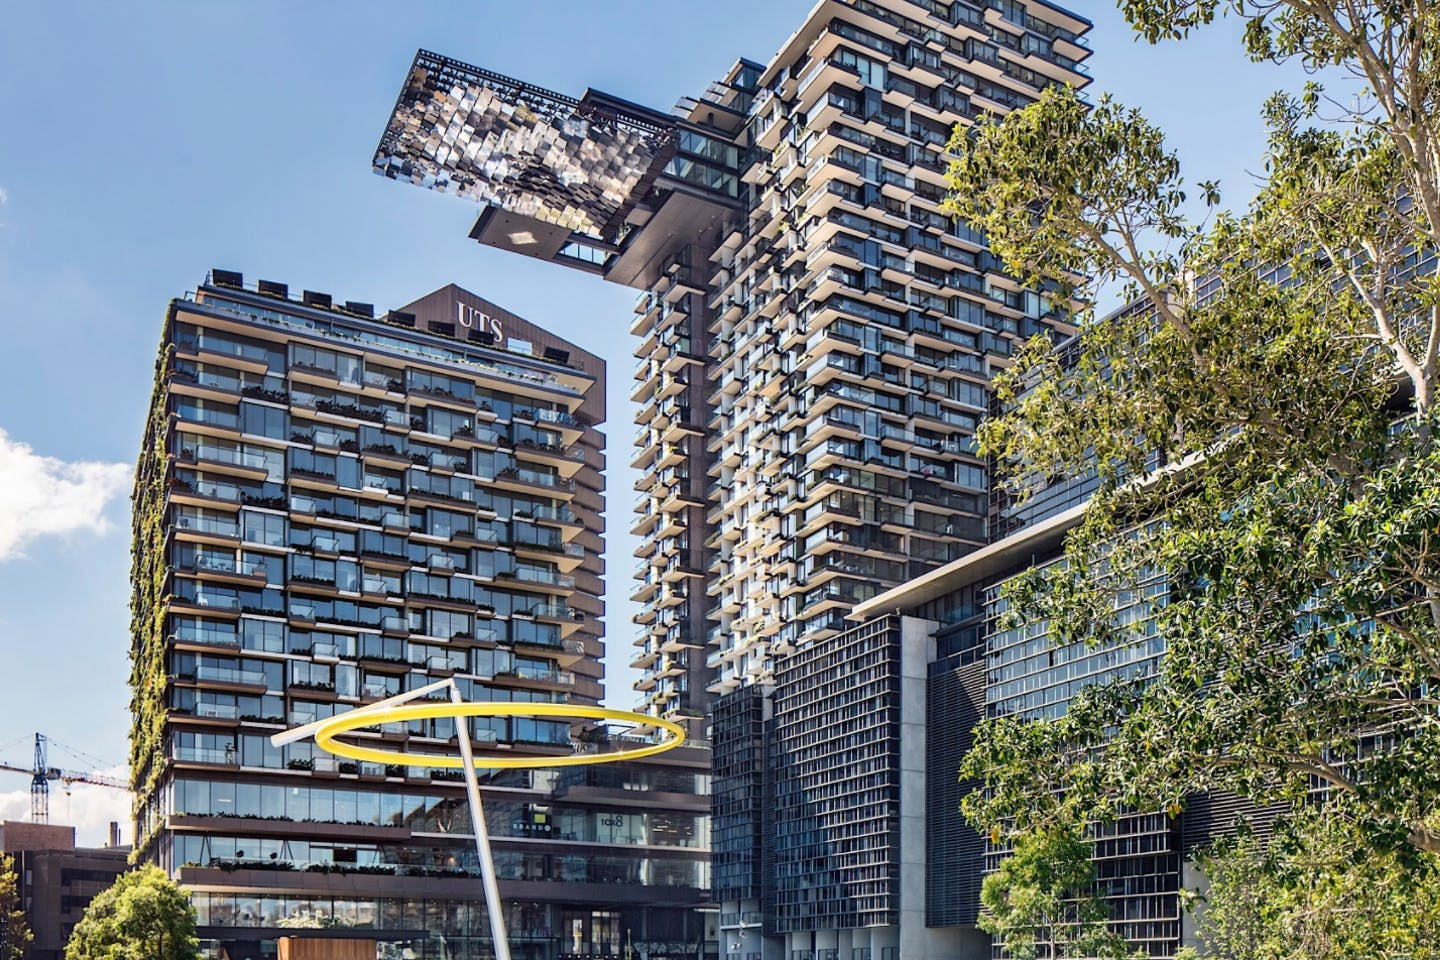 Frasers Property Australia's One Central Park in Sydney.